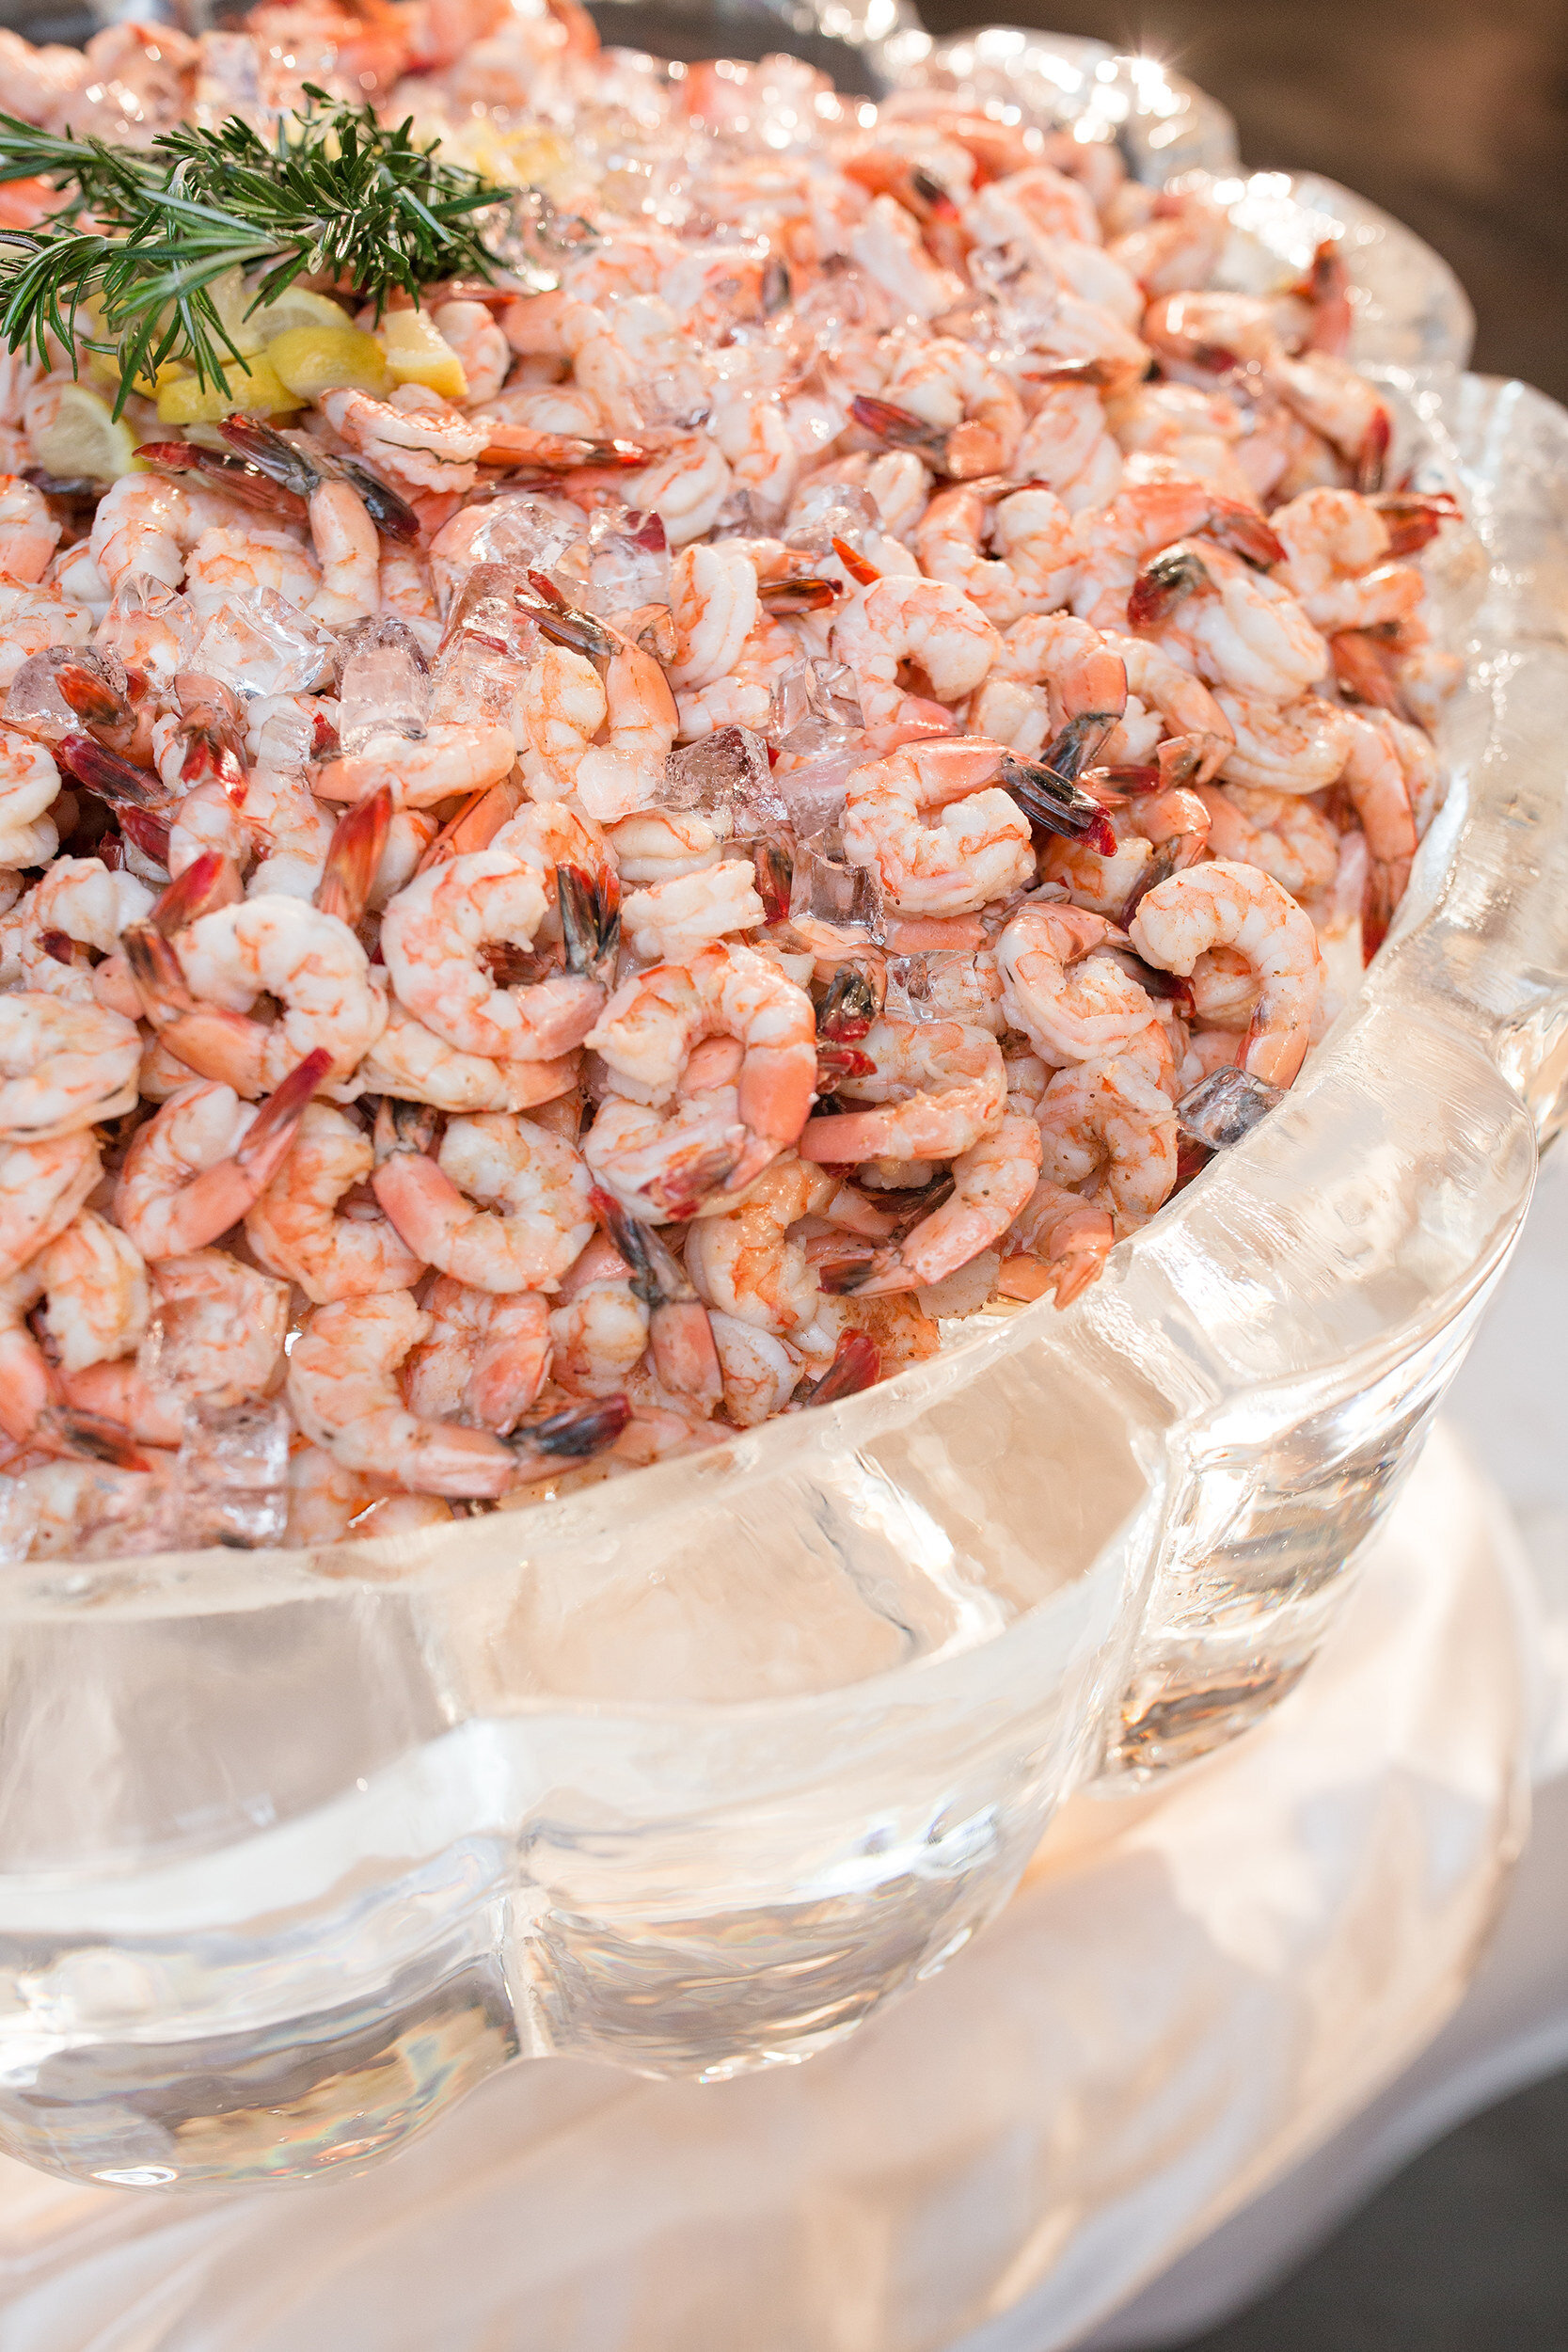 Catering Food Gallery Savoie Catering